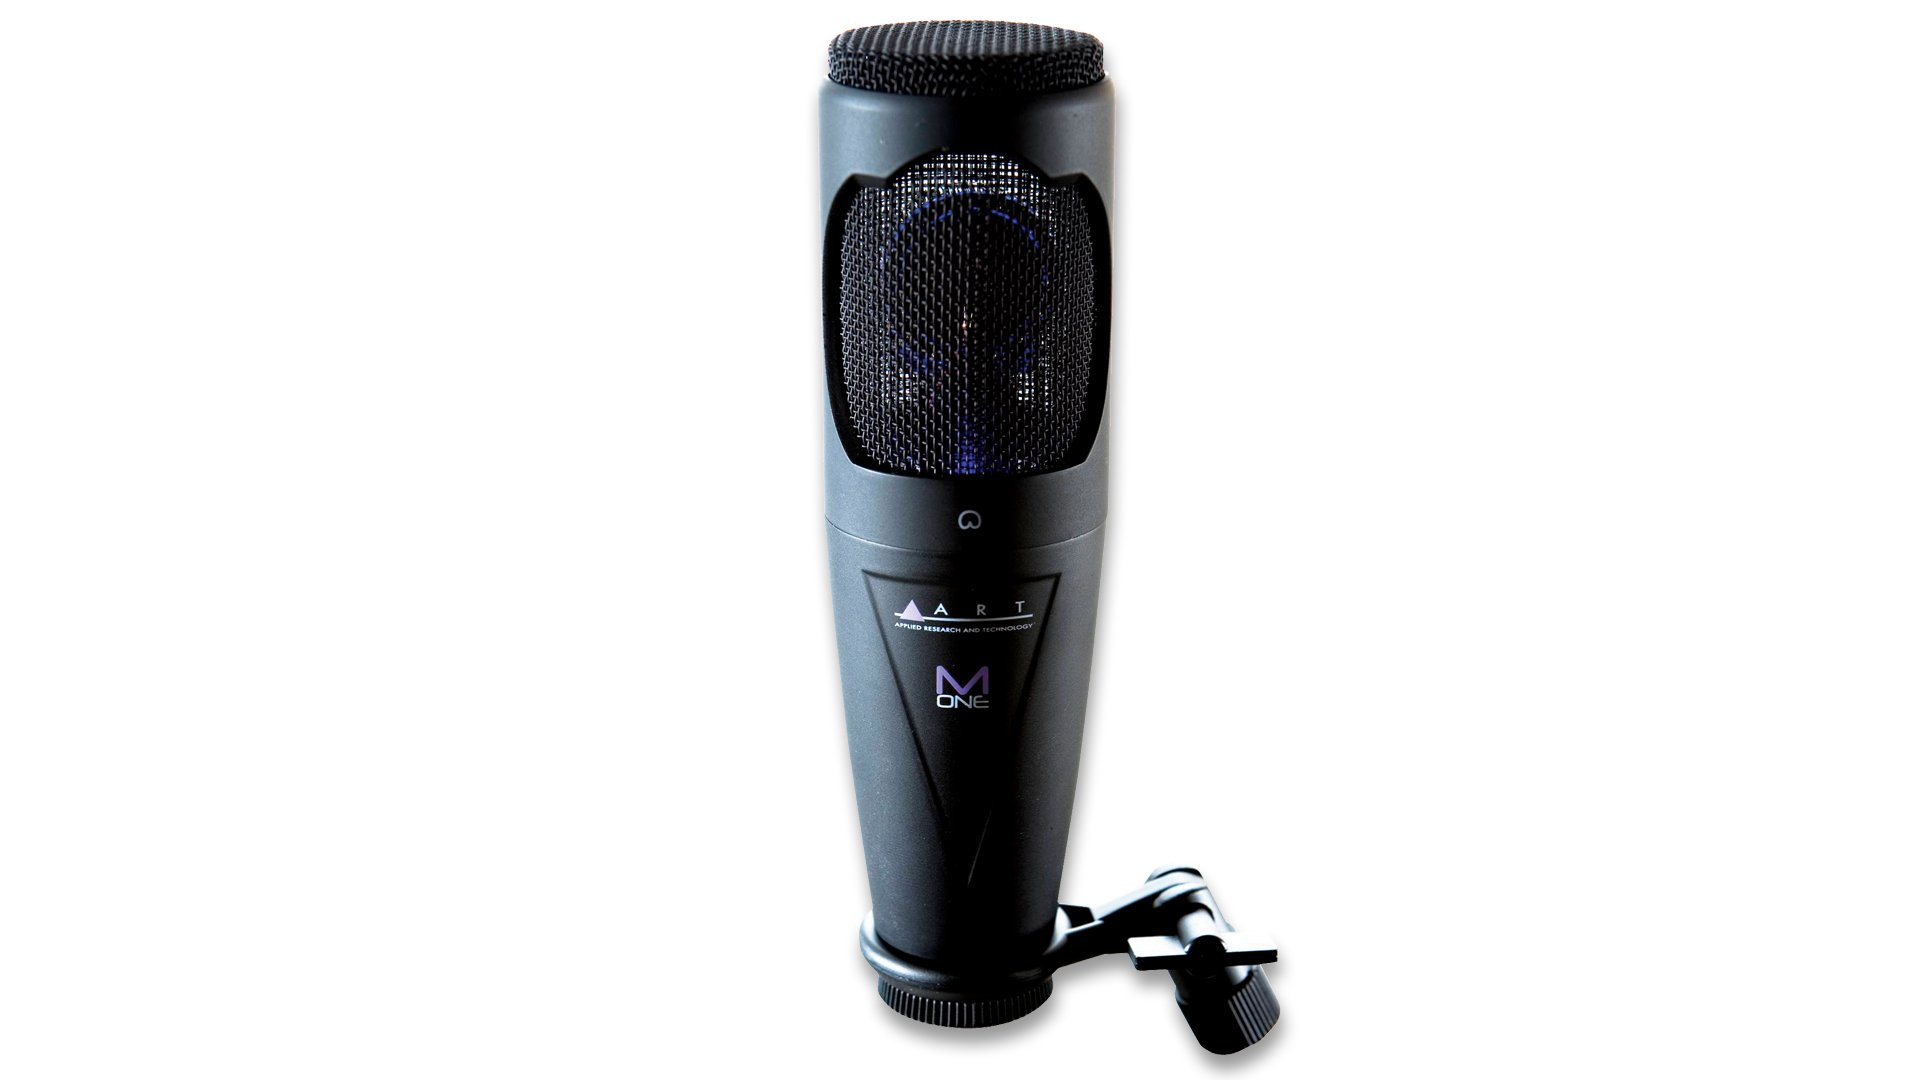 ART M-ONE USB MIC STUDIO QUALITY CONDENSER